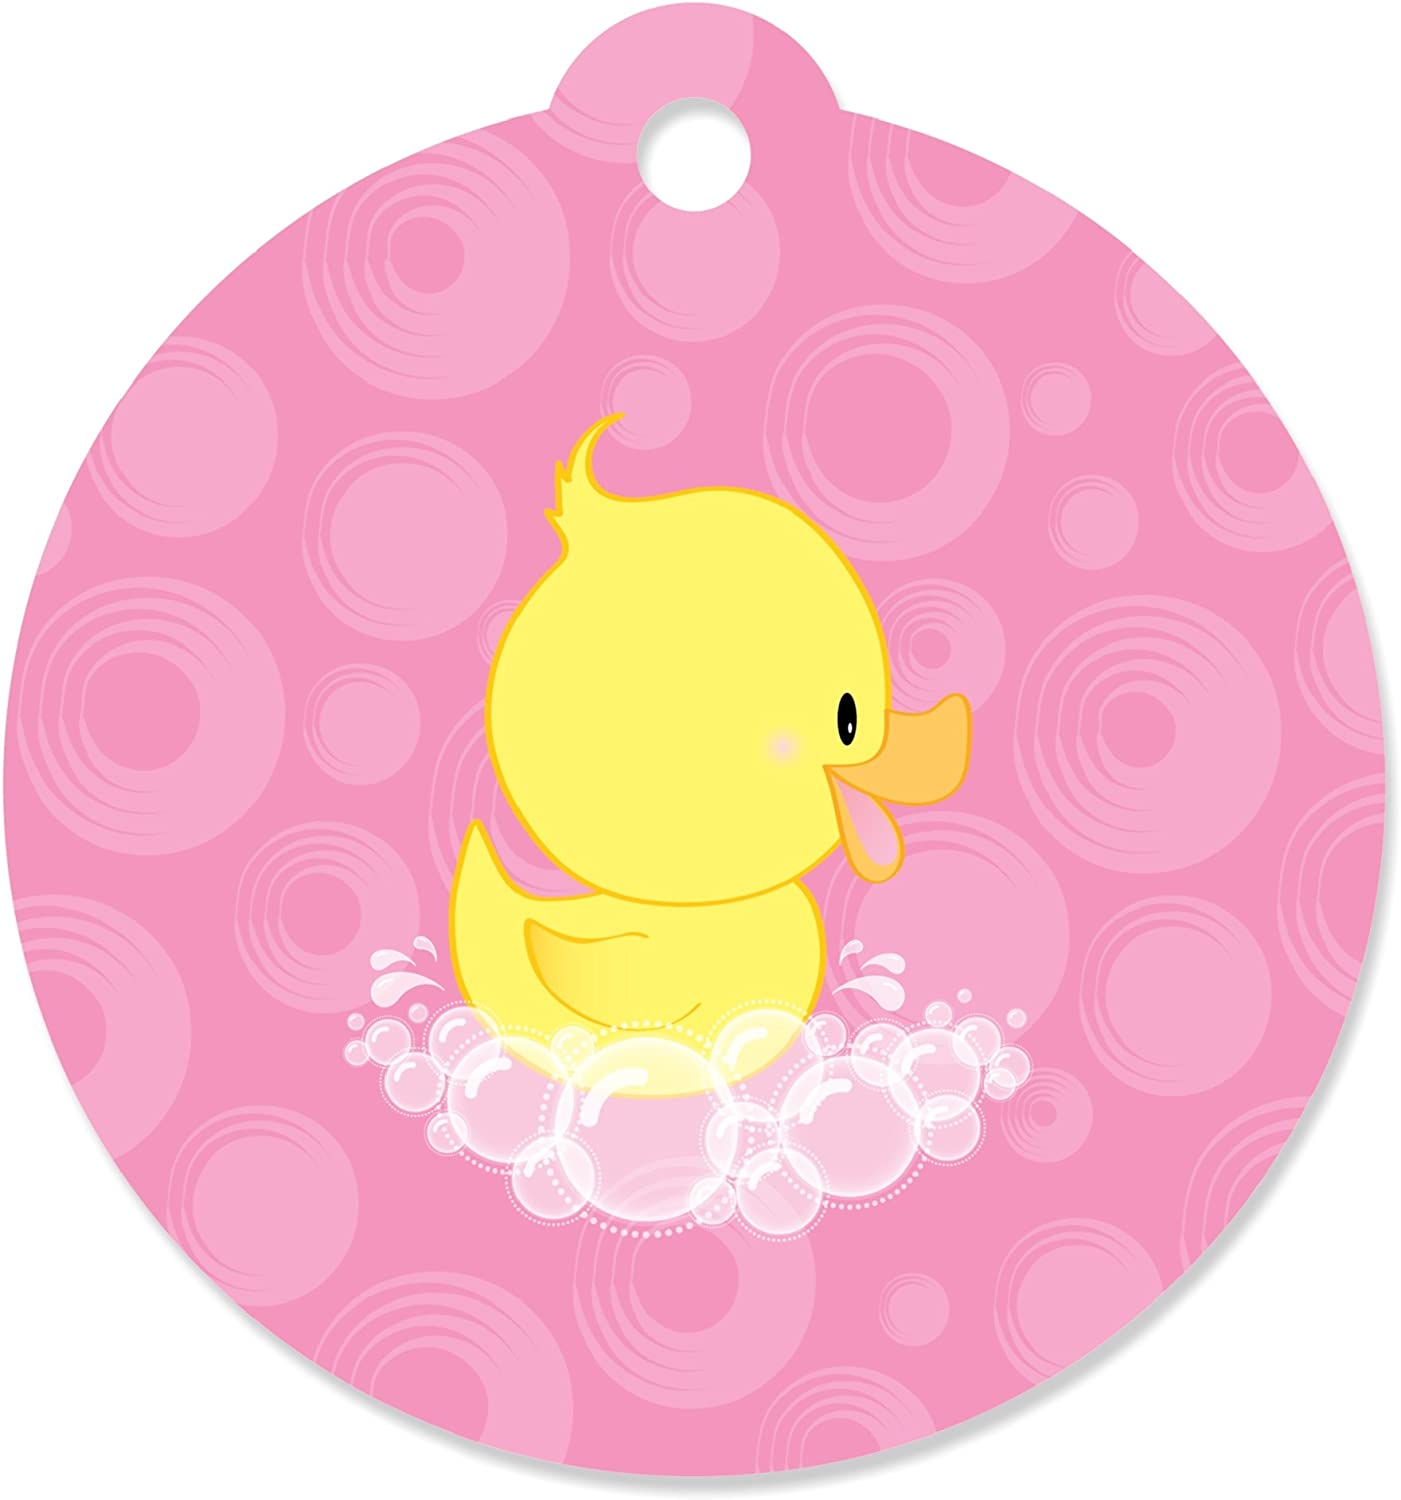 Party Favor Tags Large Tags Baby Shower Tags Baby Girl With Ducky Toy Personalized Tags Baby Shower Favor Tags 25 Baby Girl